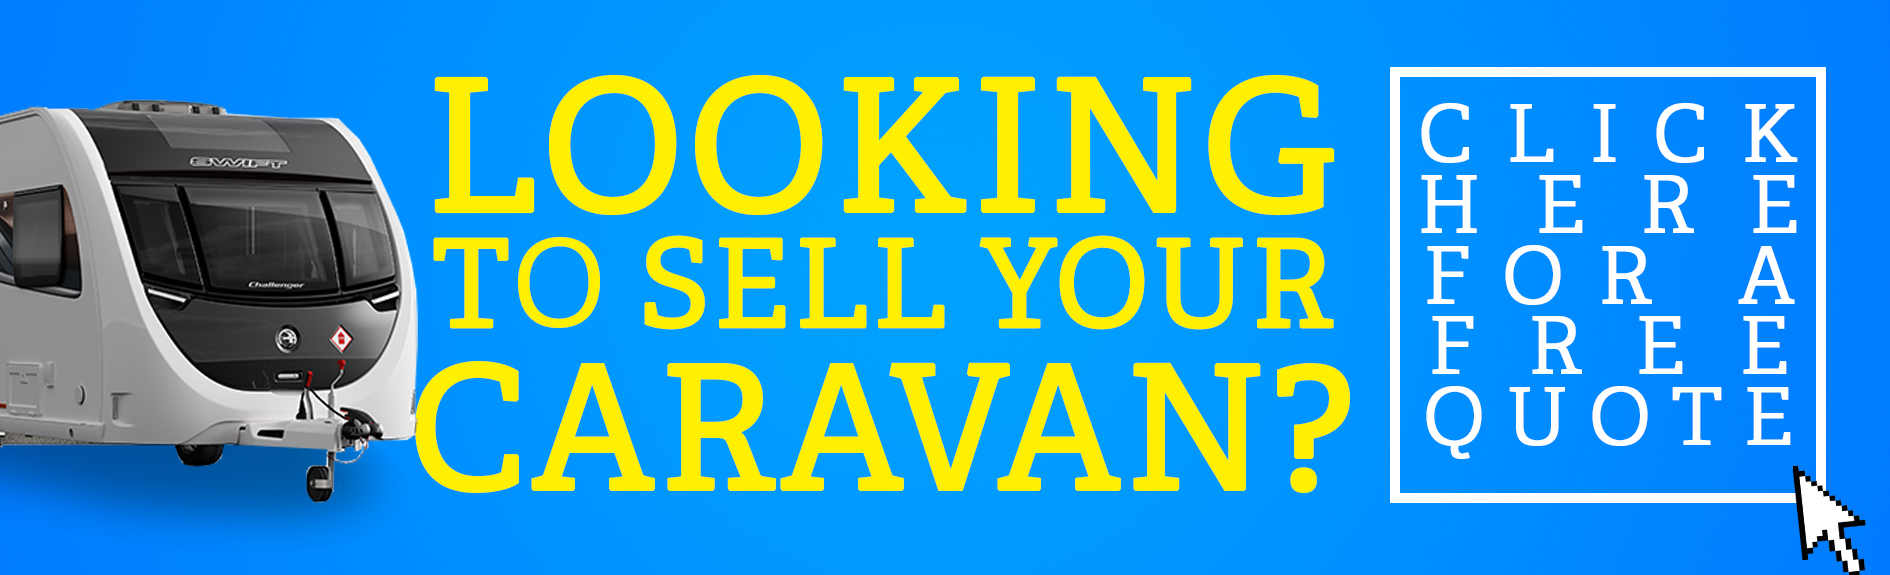 Looking at selling your caravan? click here for quote